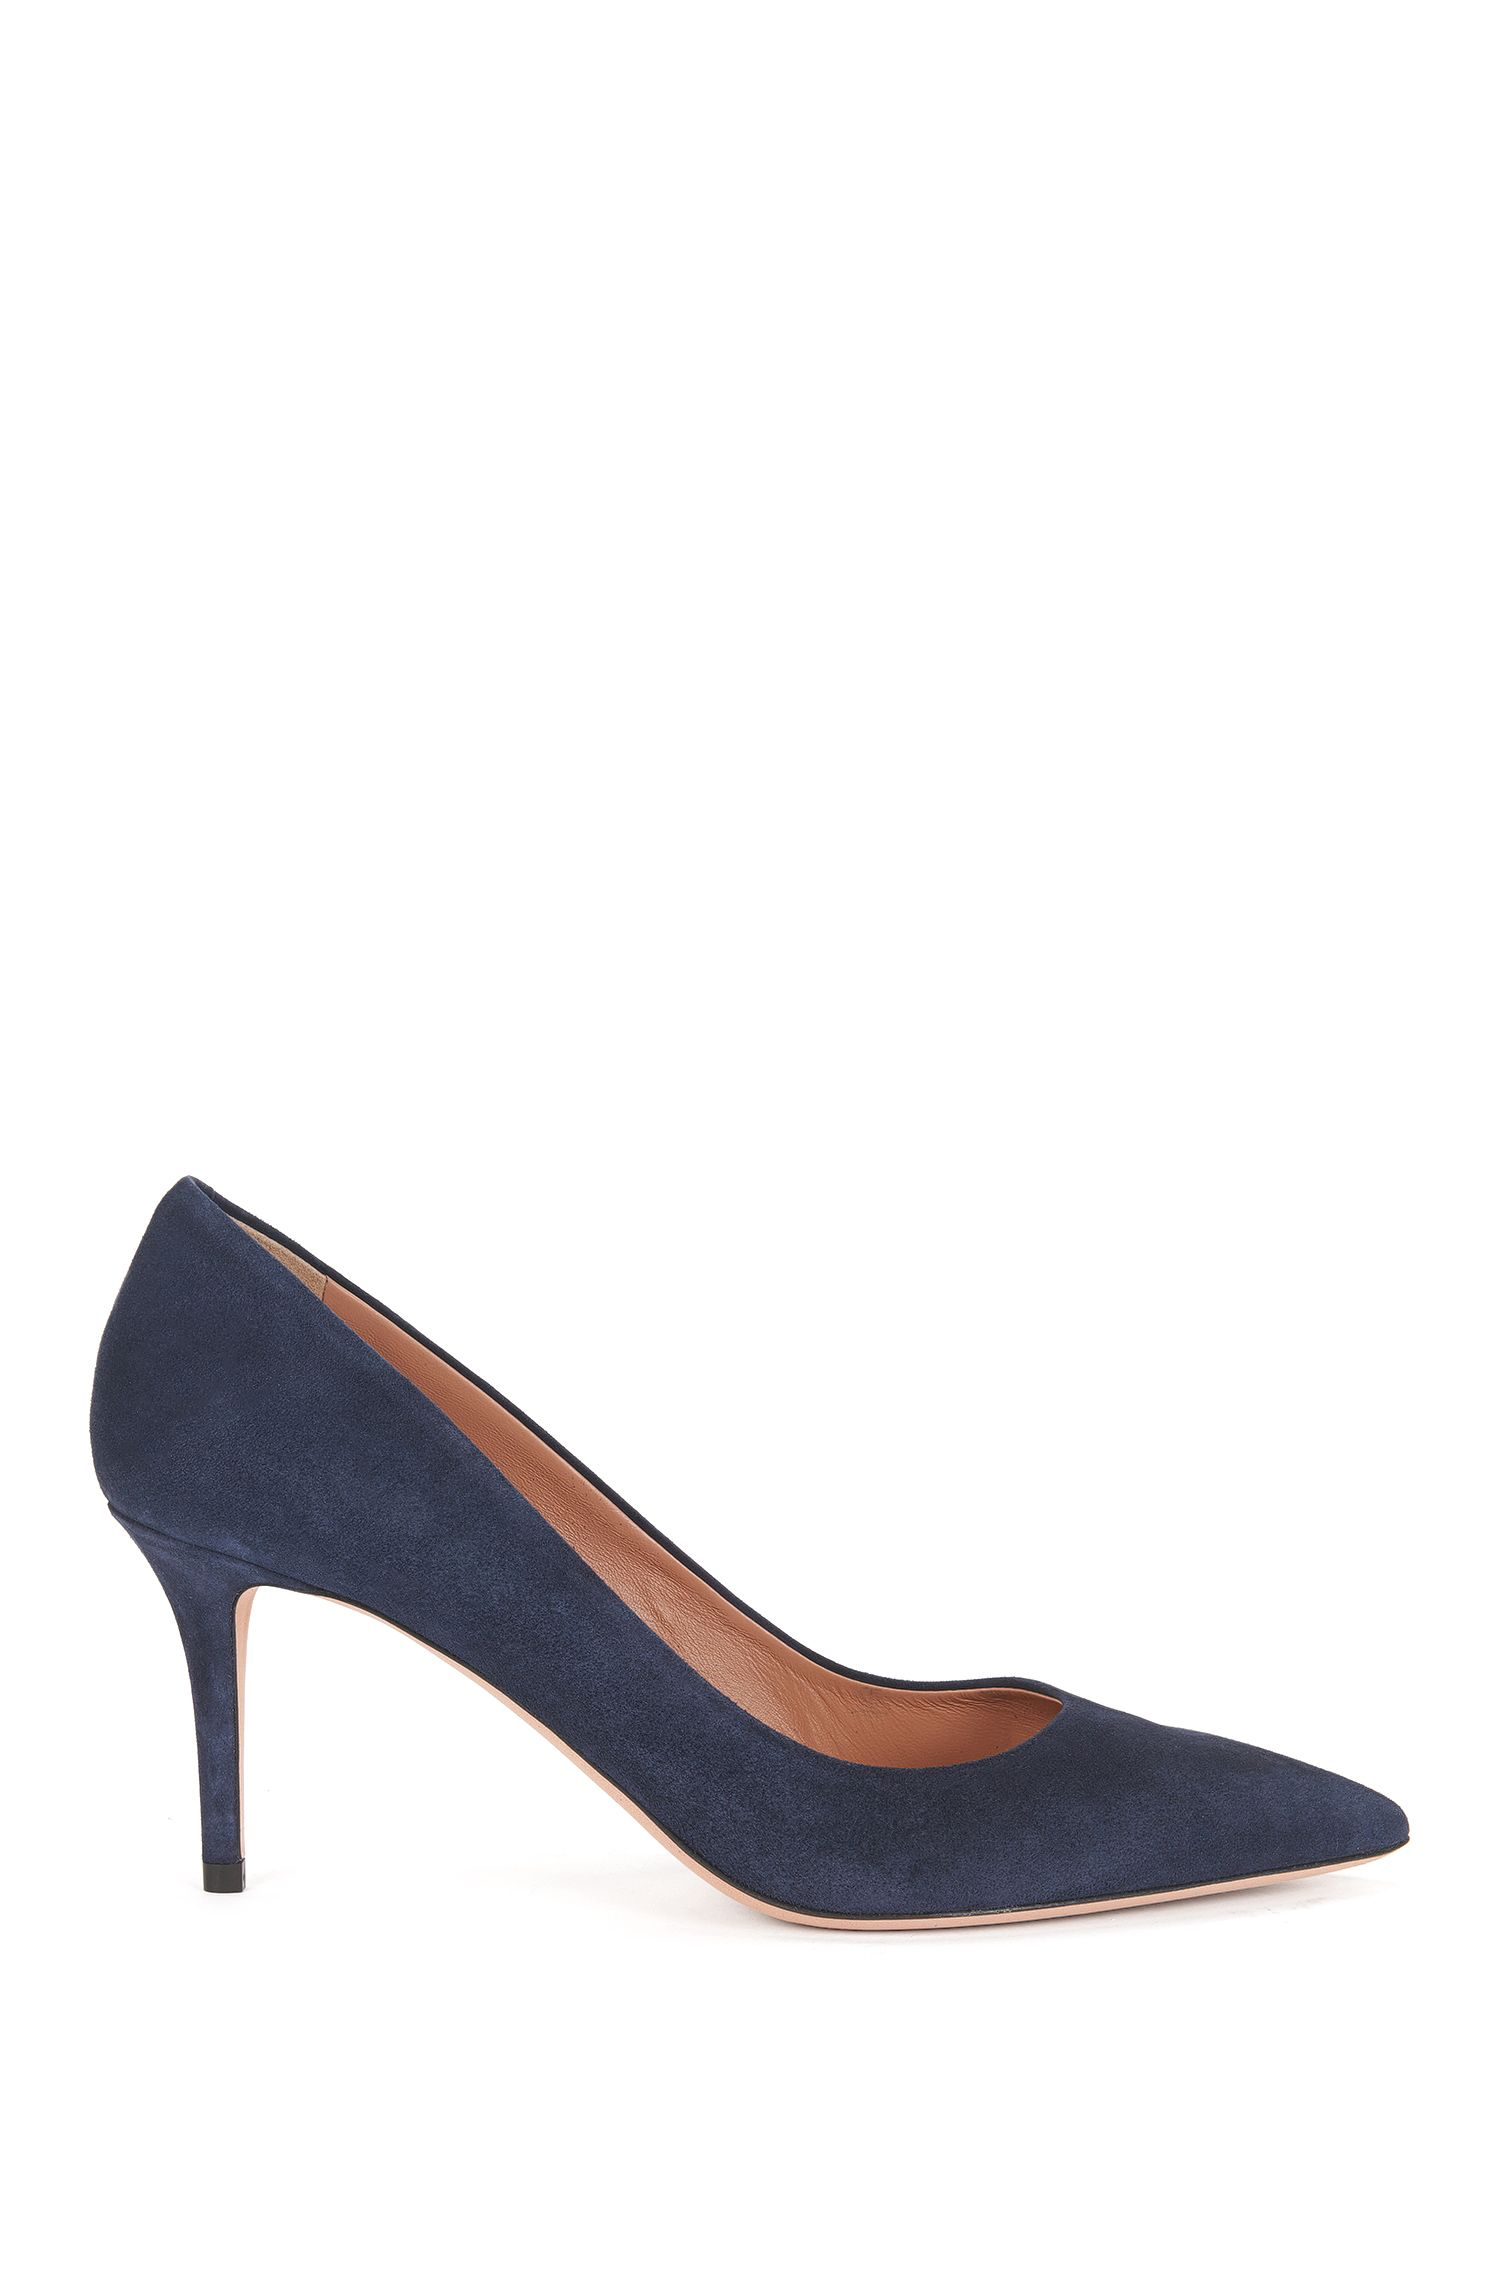 Suede court shoes with 70mm heel